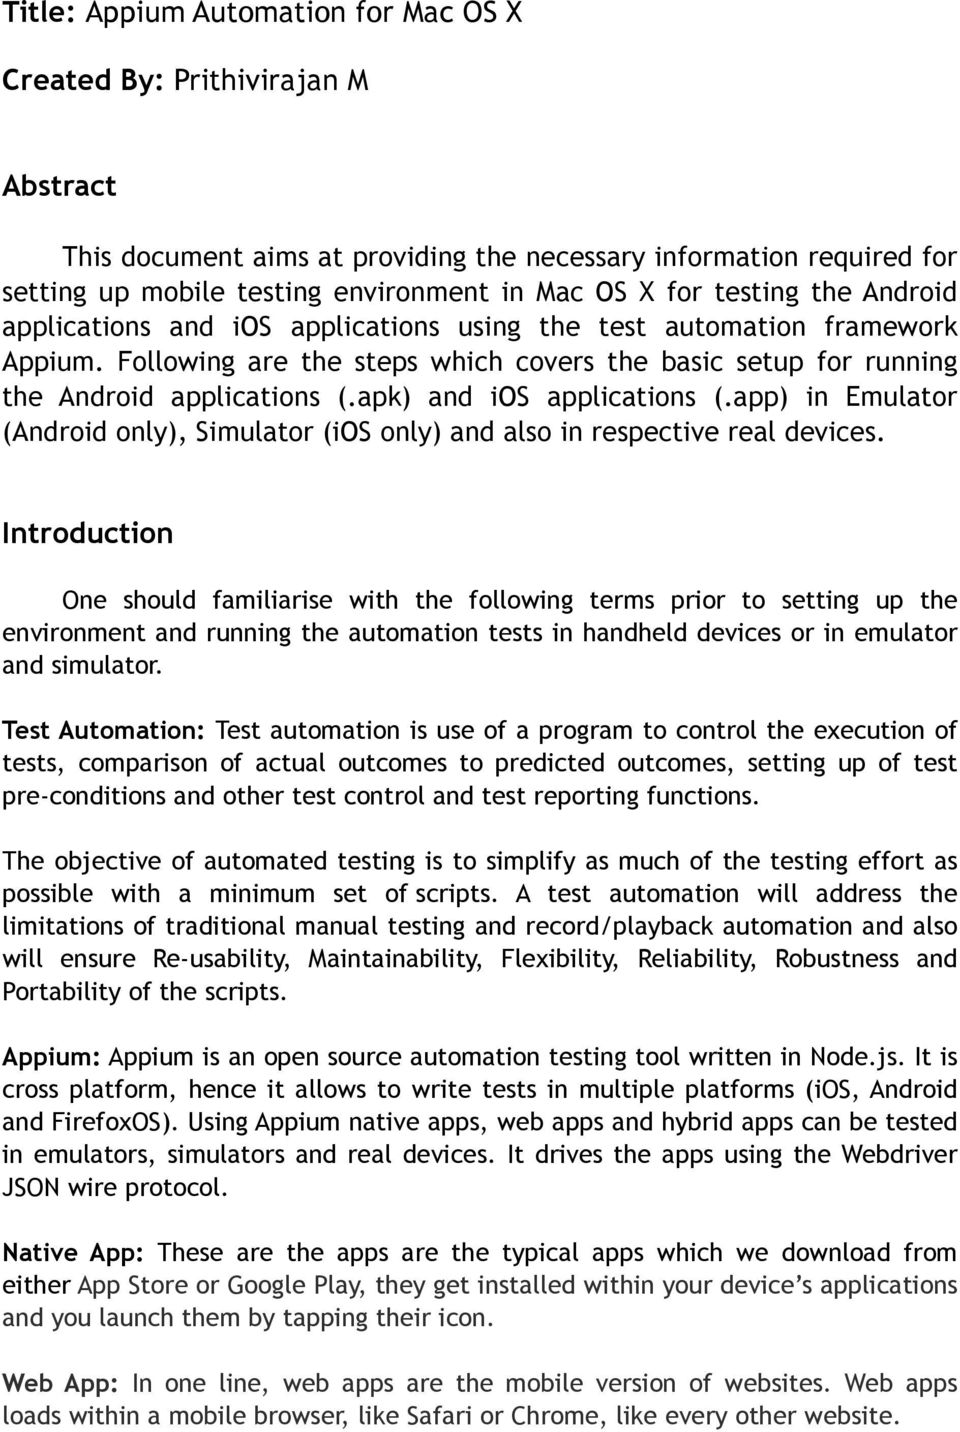 Title: Appium Automation for Mac OS X  Created By